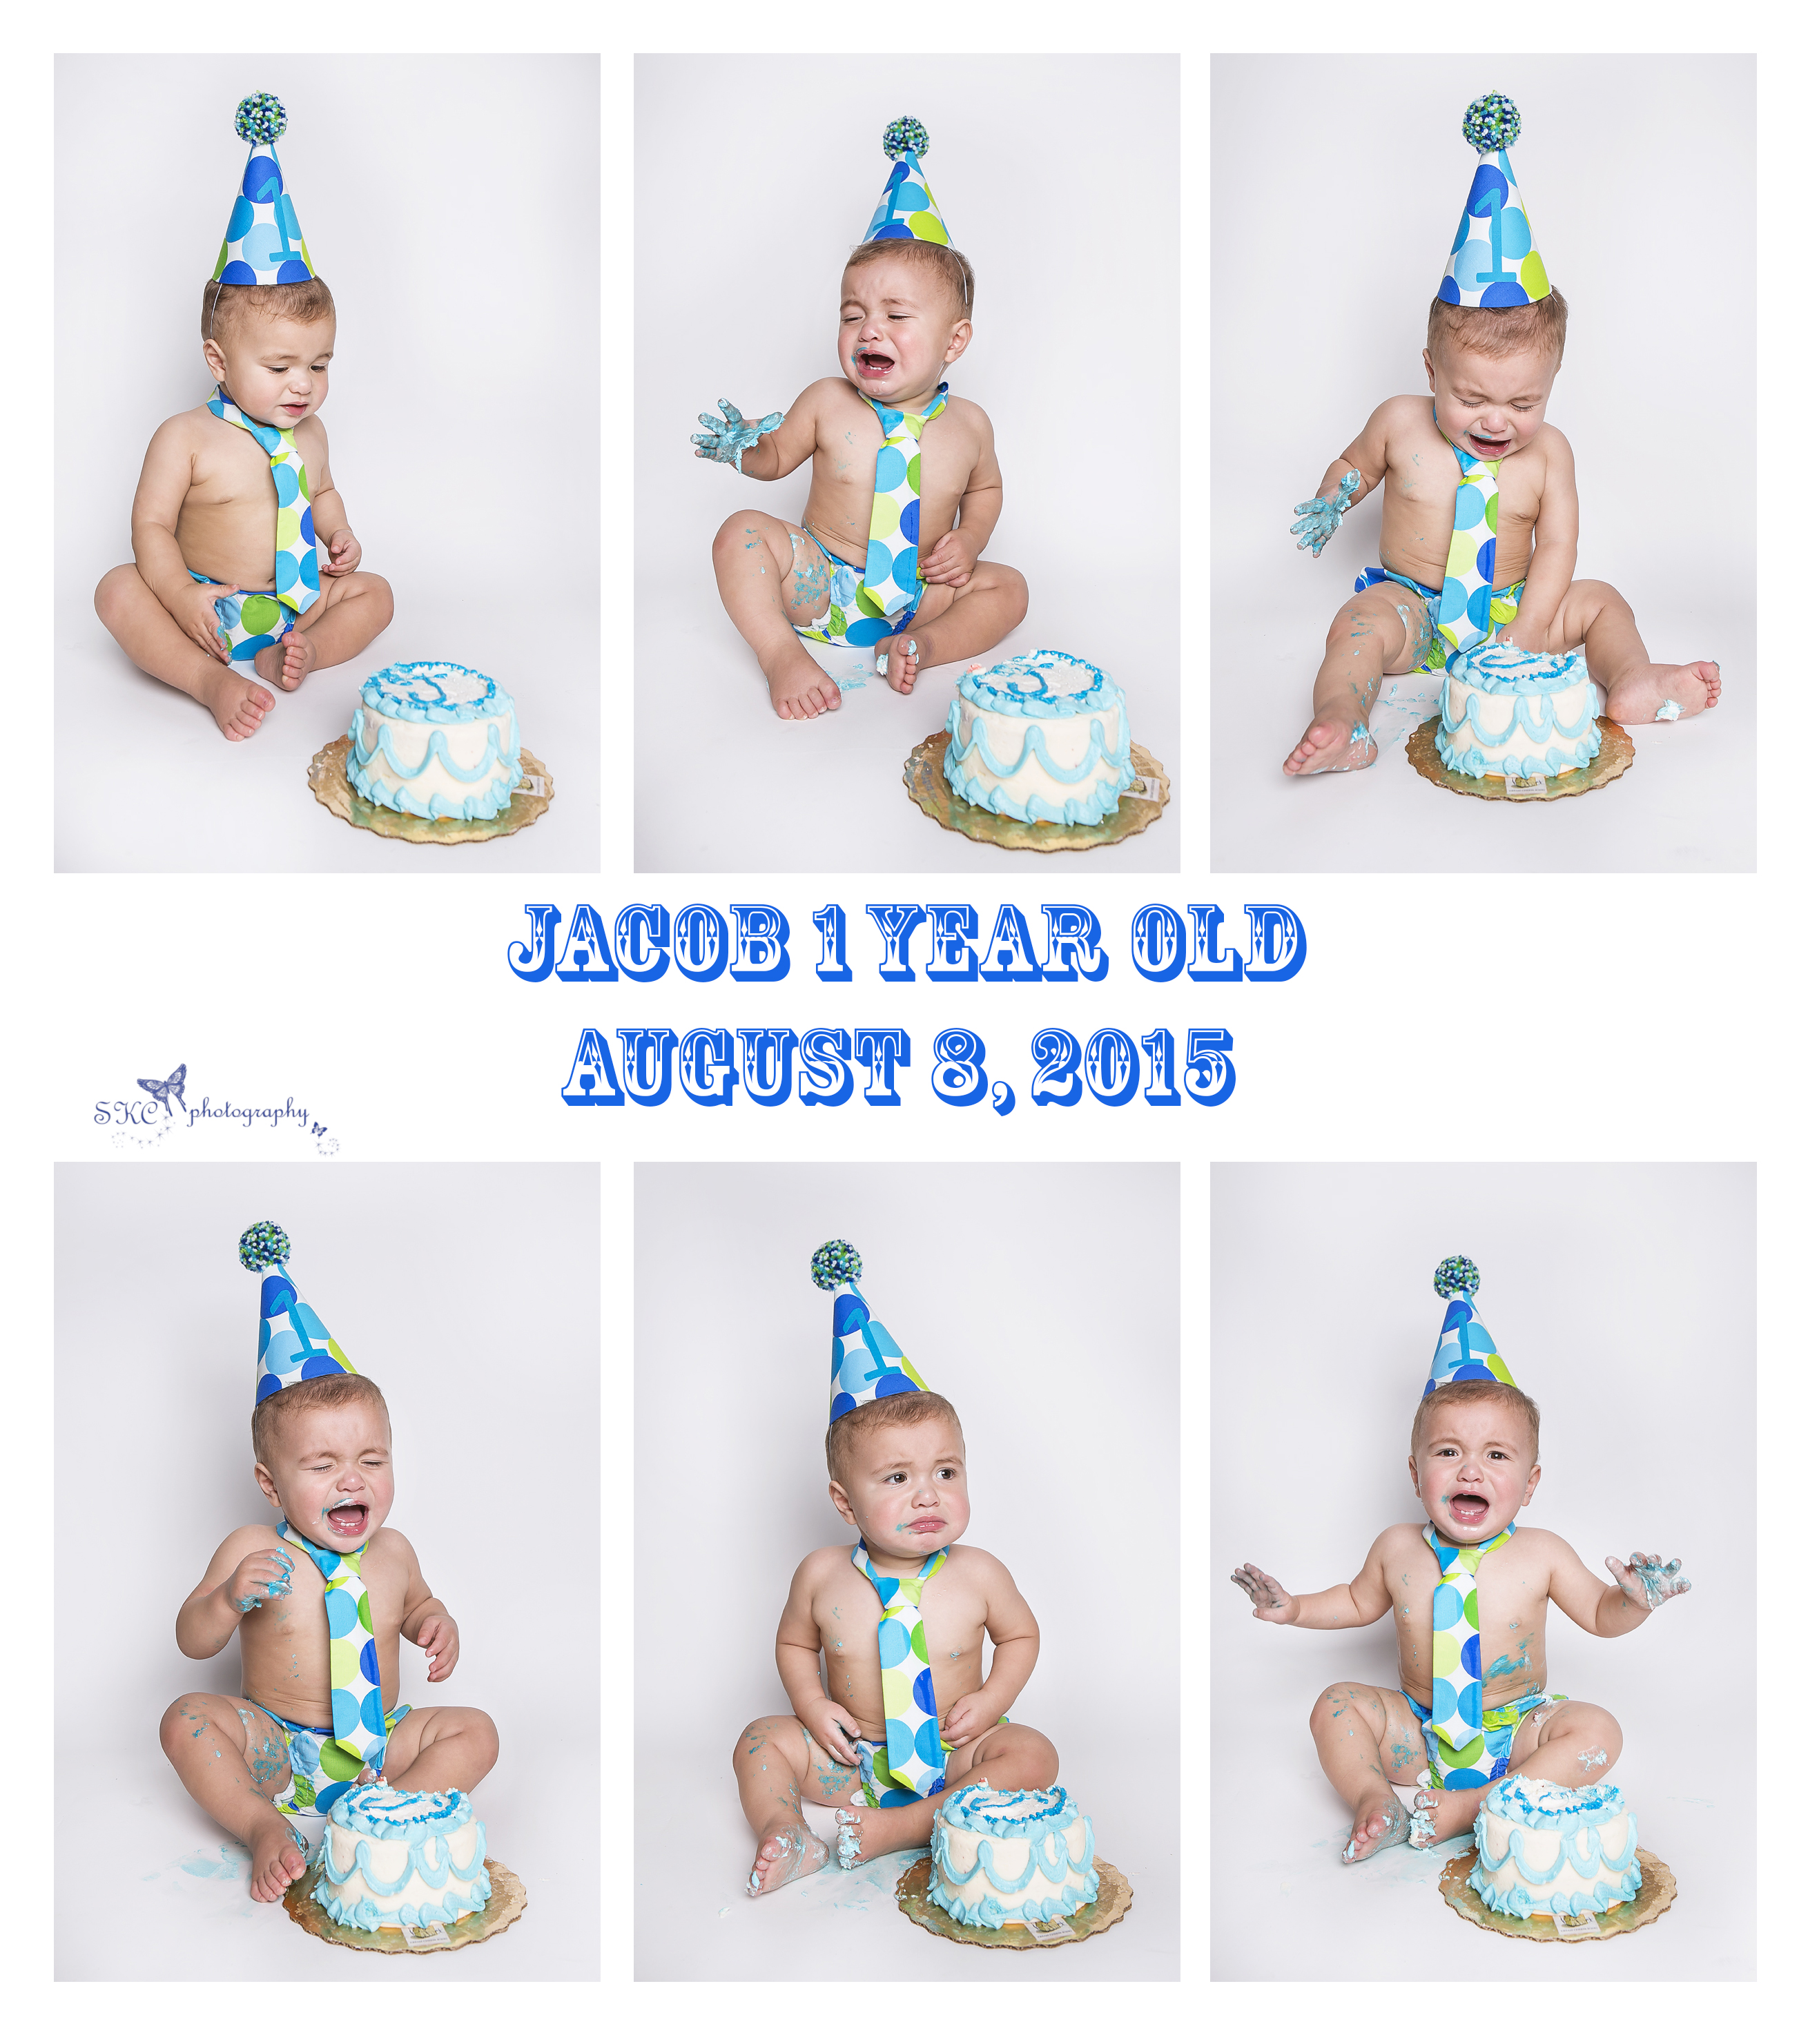 Jacob 1 year old